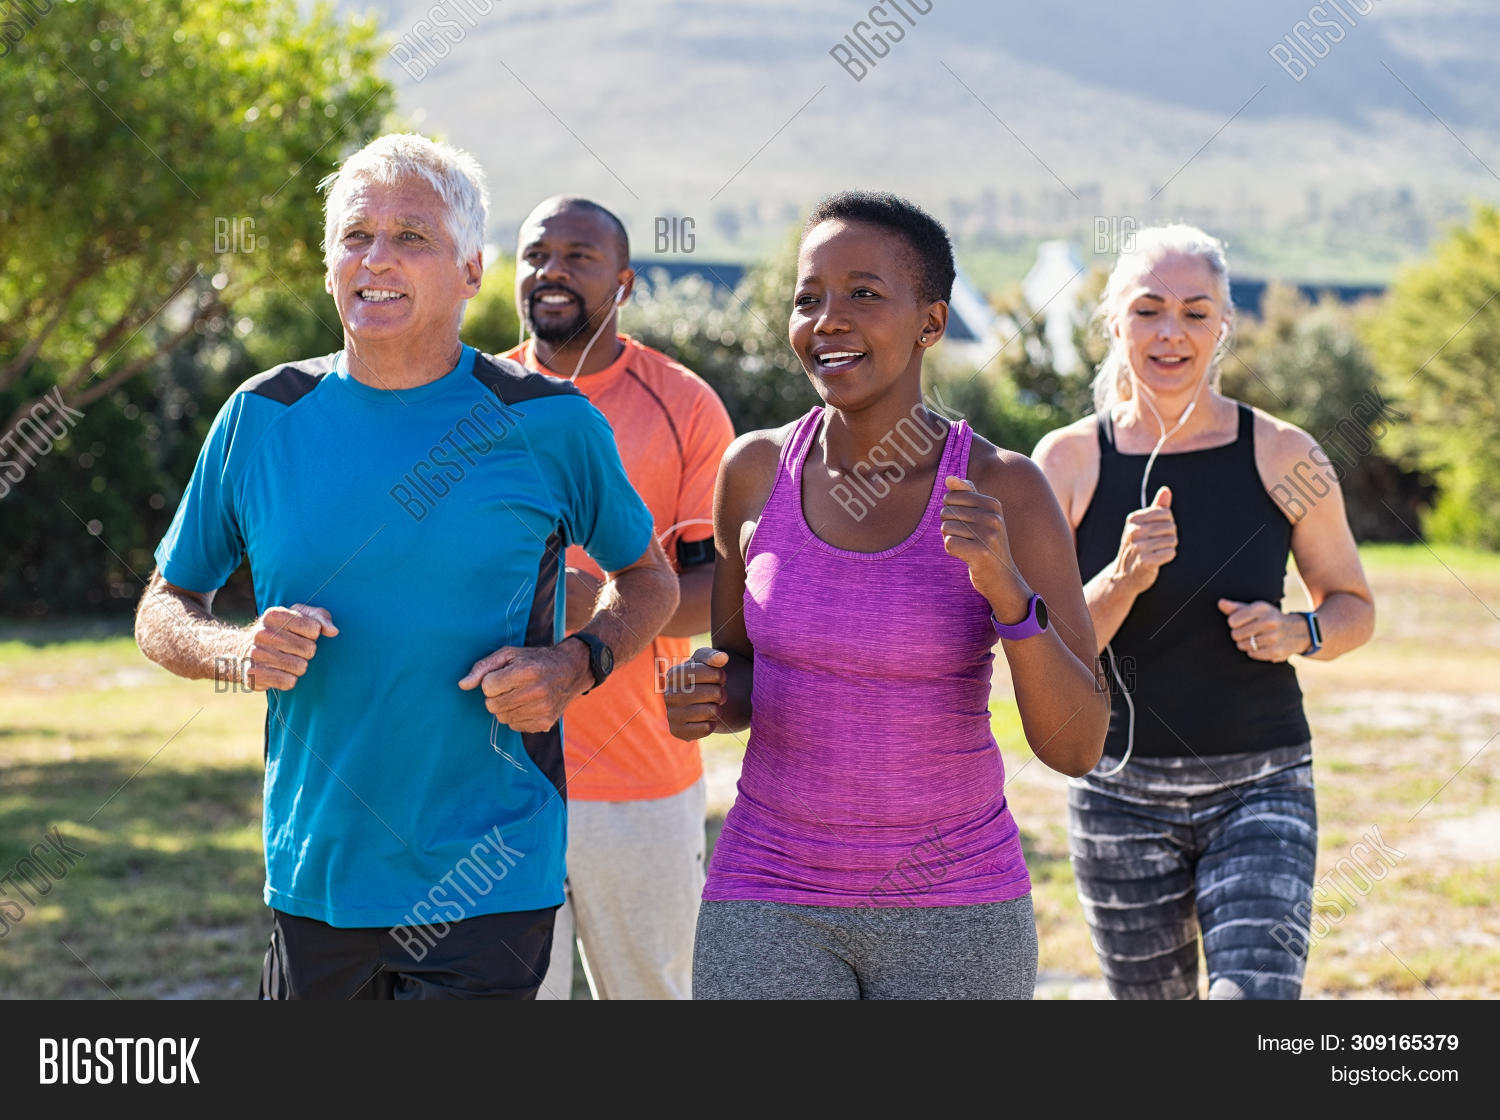 active,active seniors,activity,african,american,athletic,black,cheerful,diversity,exercising,fit,fitness,fitness training,friend,friendship,group,happiness,happy,healthy,jog,jogger,man,mature,middle aged man,middle aged woman,multi ethnic group,multiethnic,old people exercising,old people running,outdoor,outdoors,park,people,routine,run,runner,senior,senior fitness,senior man,senior woman,seniors,seniors friends,smile,sport,sportswear,summer,together,track,woman,workout